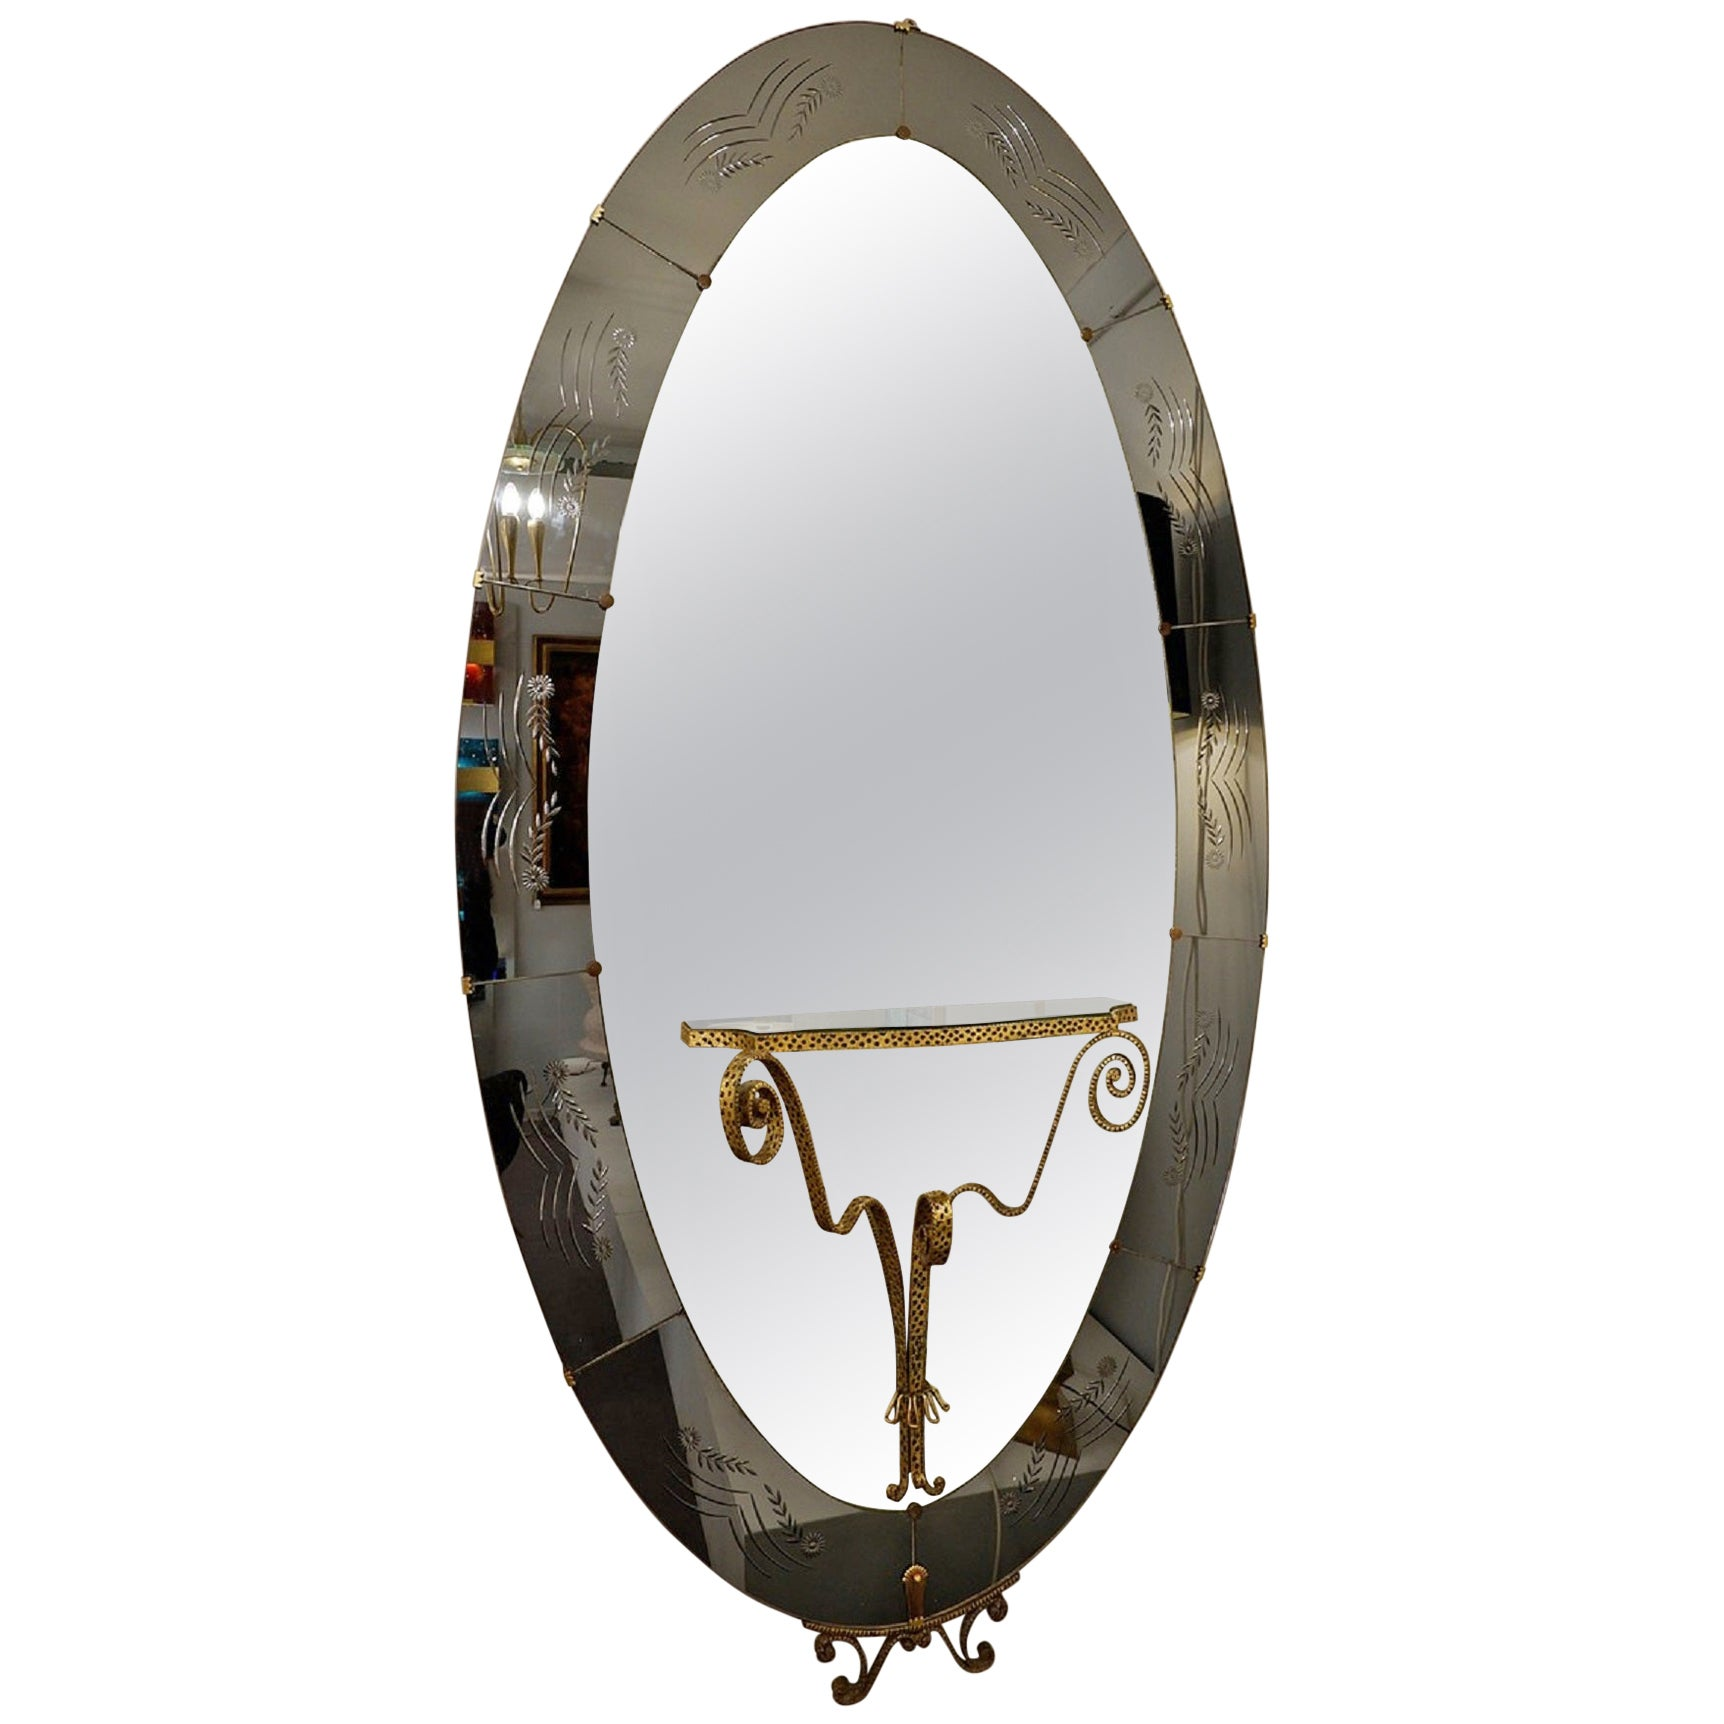 Cristal Art Mirror with Console Attributed to Luigi Colli, Italy, 1950s